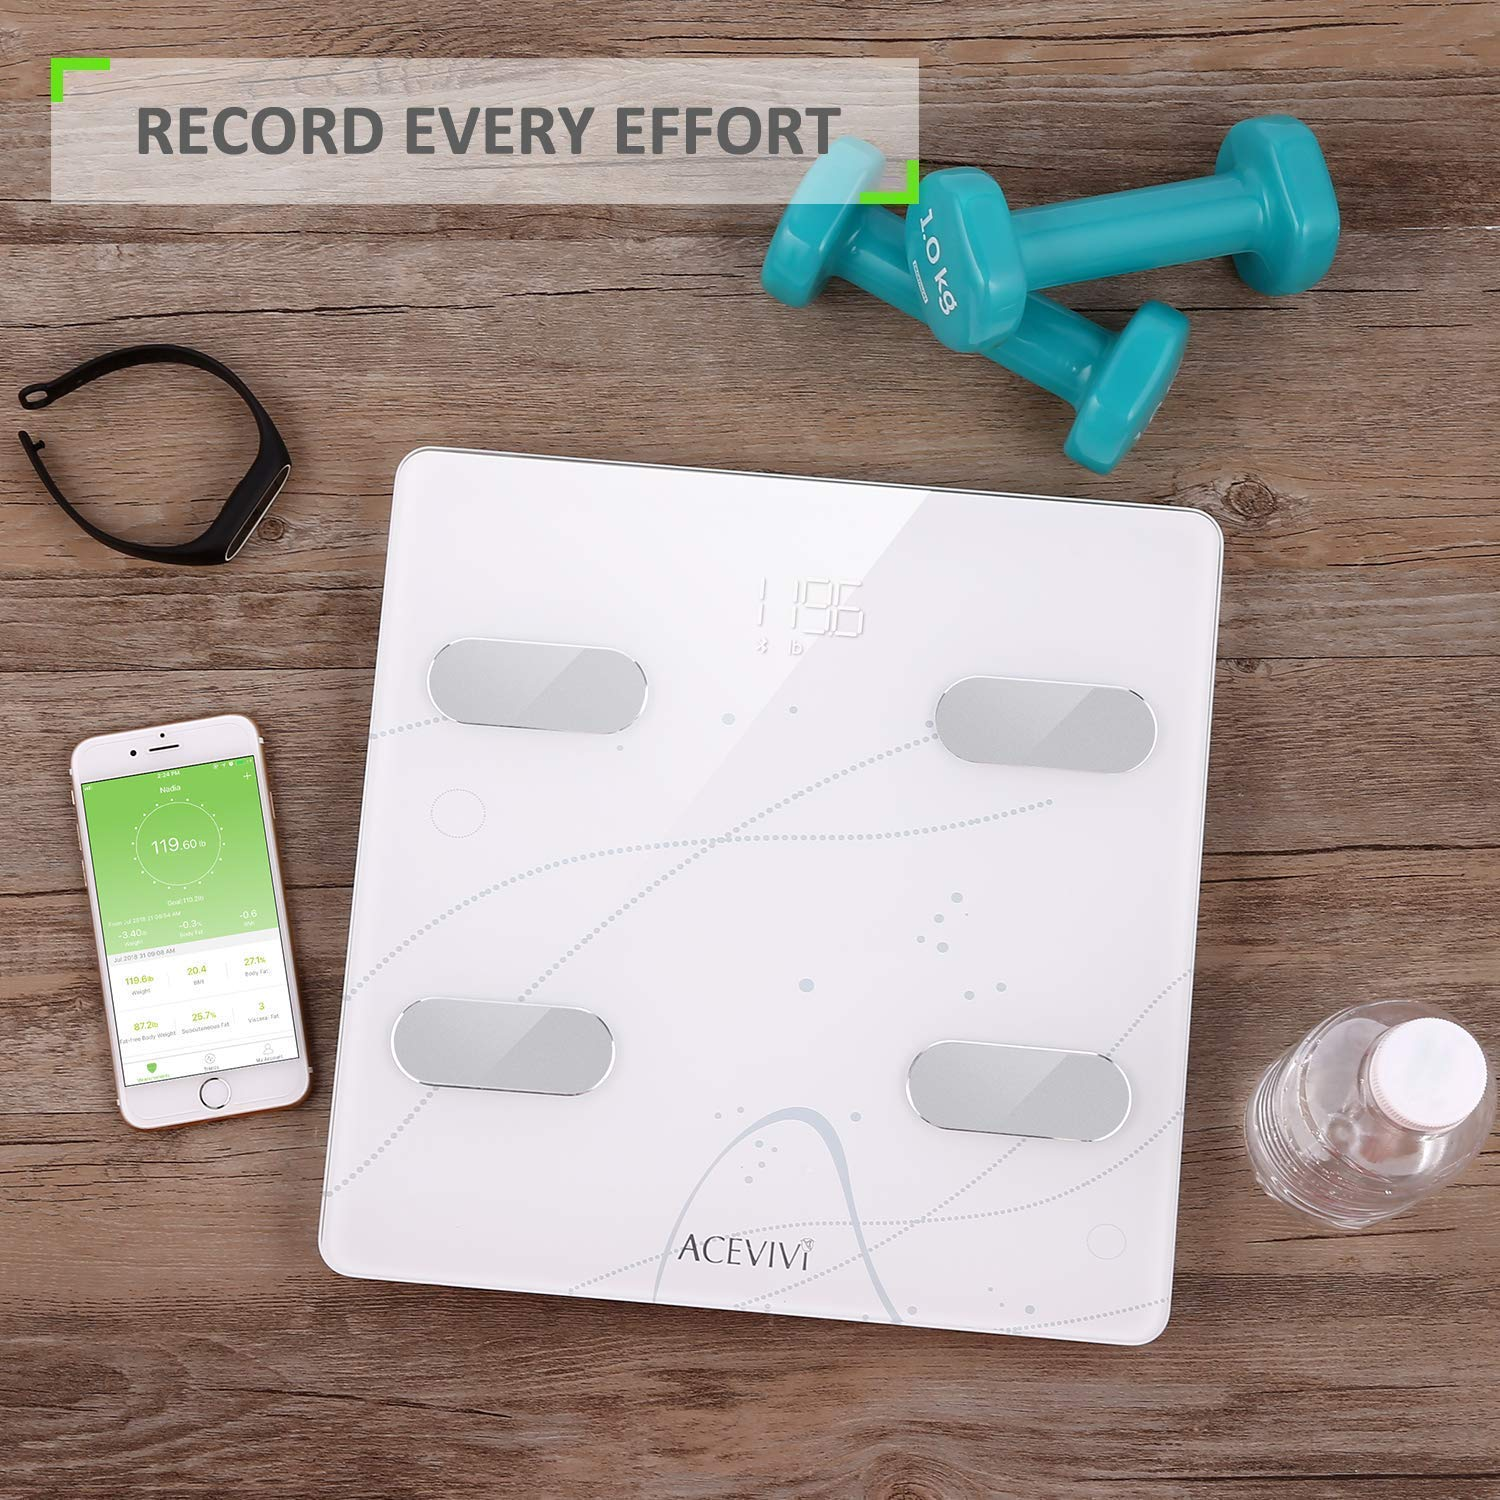 ACEVIVI Weight Body Fat Scale, Digital Bathroom Scale Bluetooth, Smart BMI Scale Body Composition Analyzer with Smartphone App - 13 Essential Measurements (White)